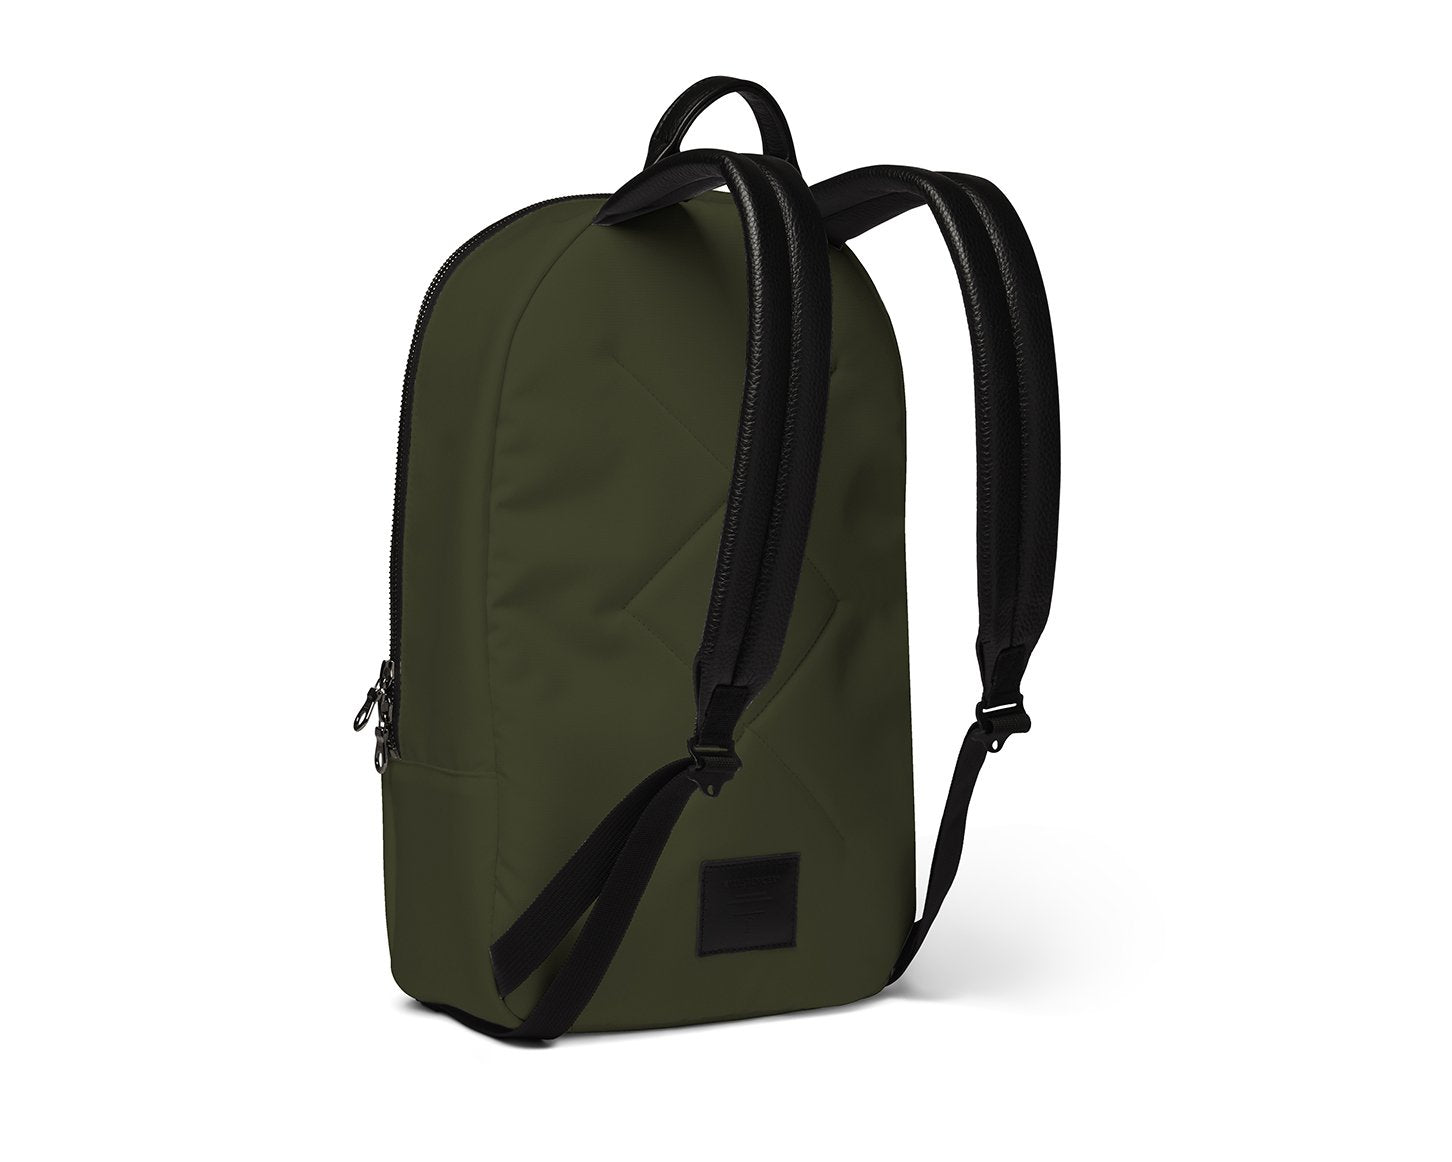 SPECIAL OPS BACKPACK 3.0 | KILLSPENCER® - Forest Nylon